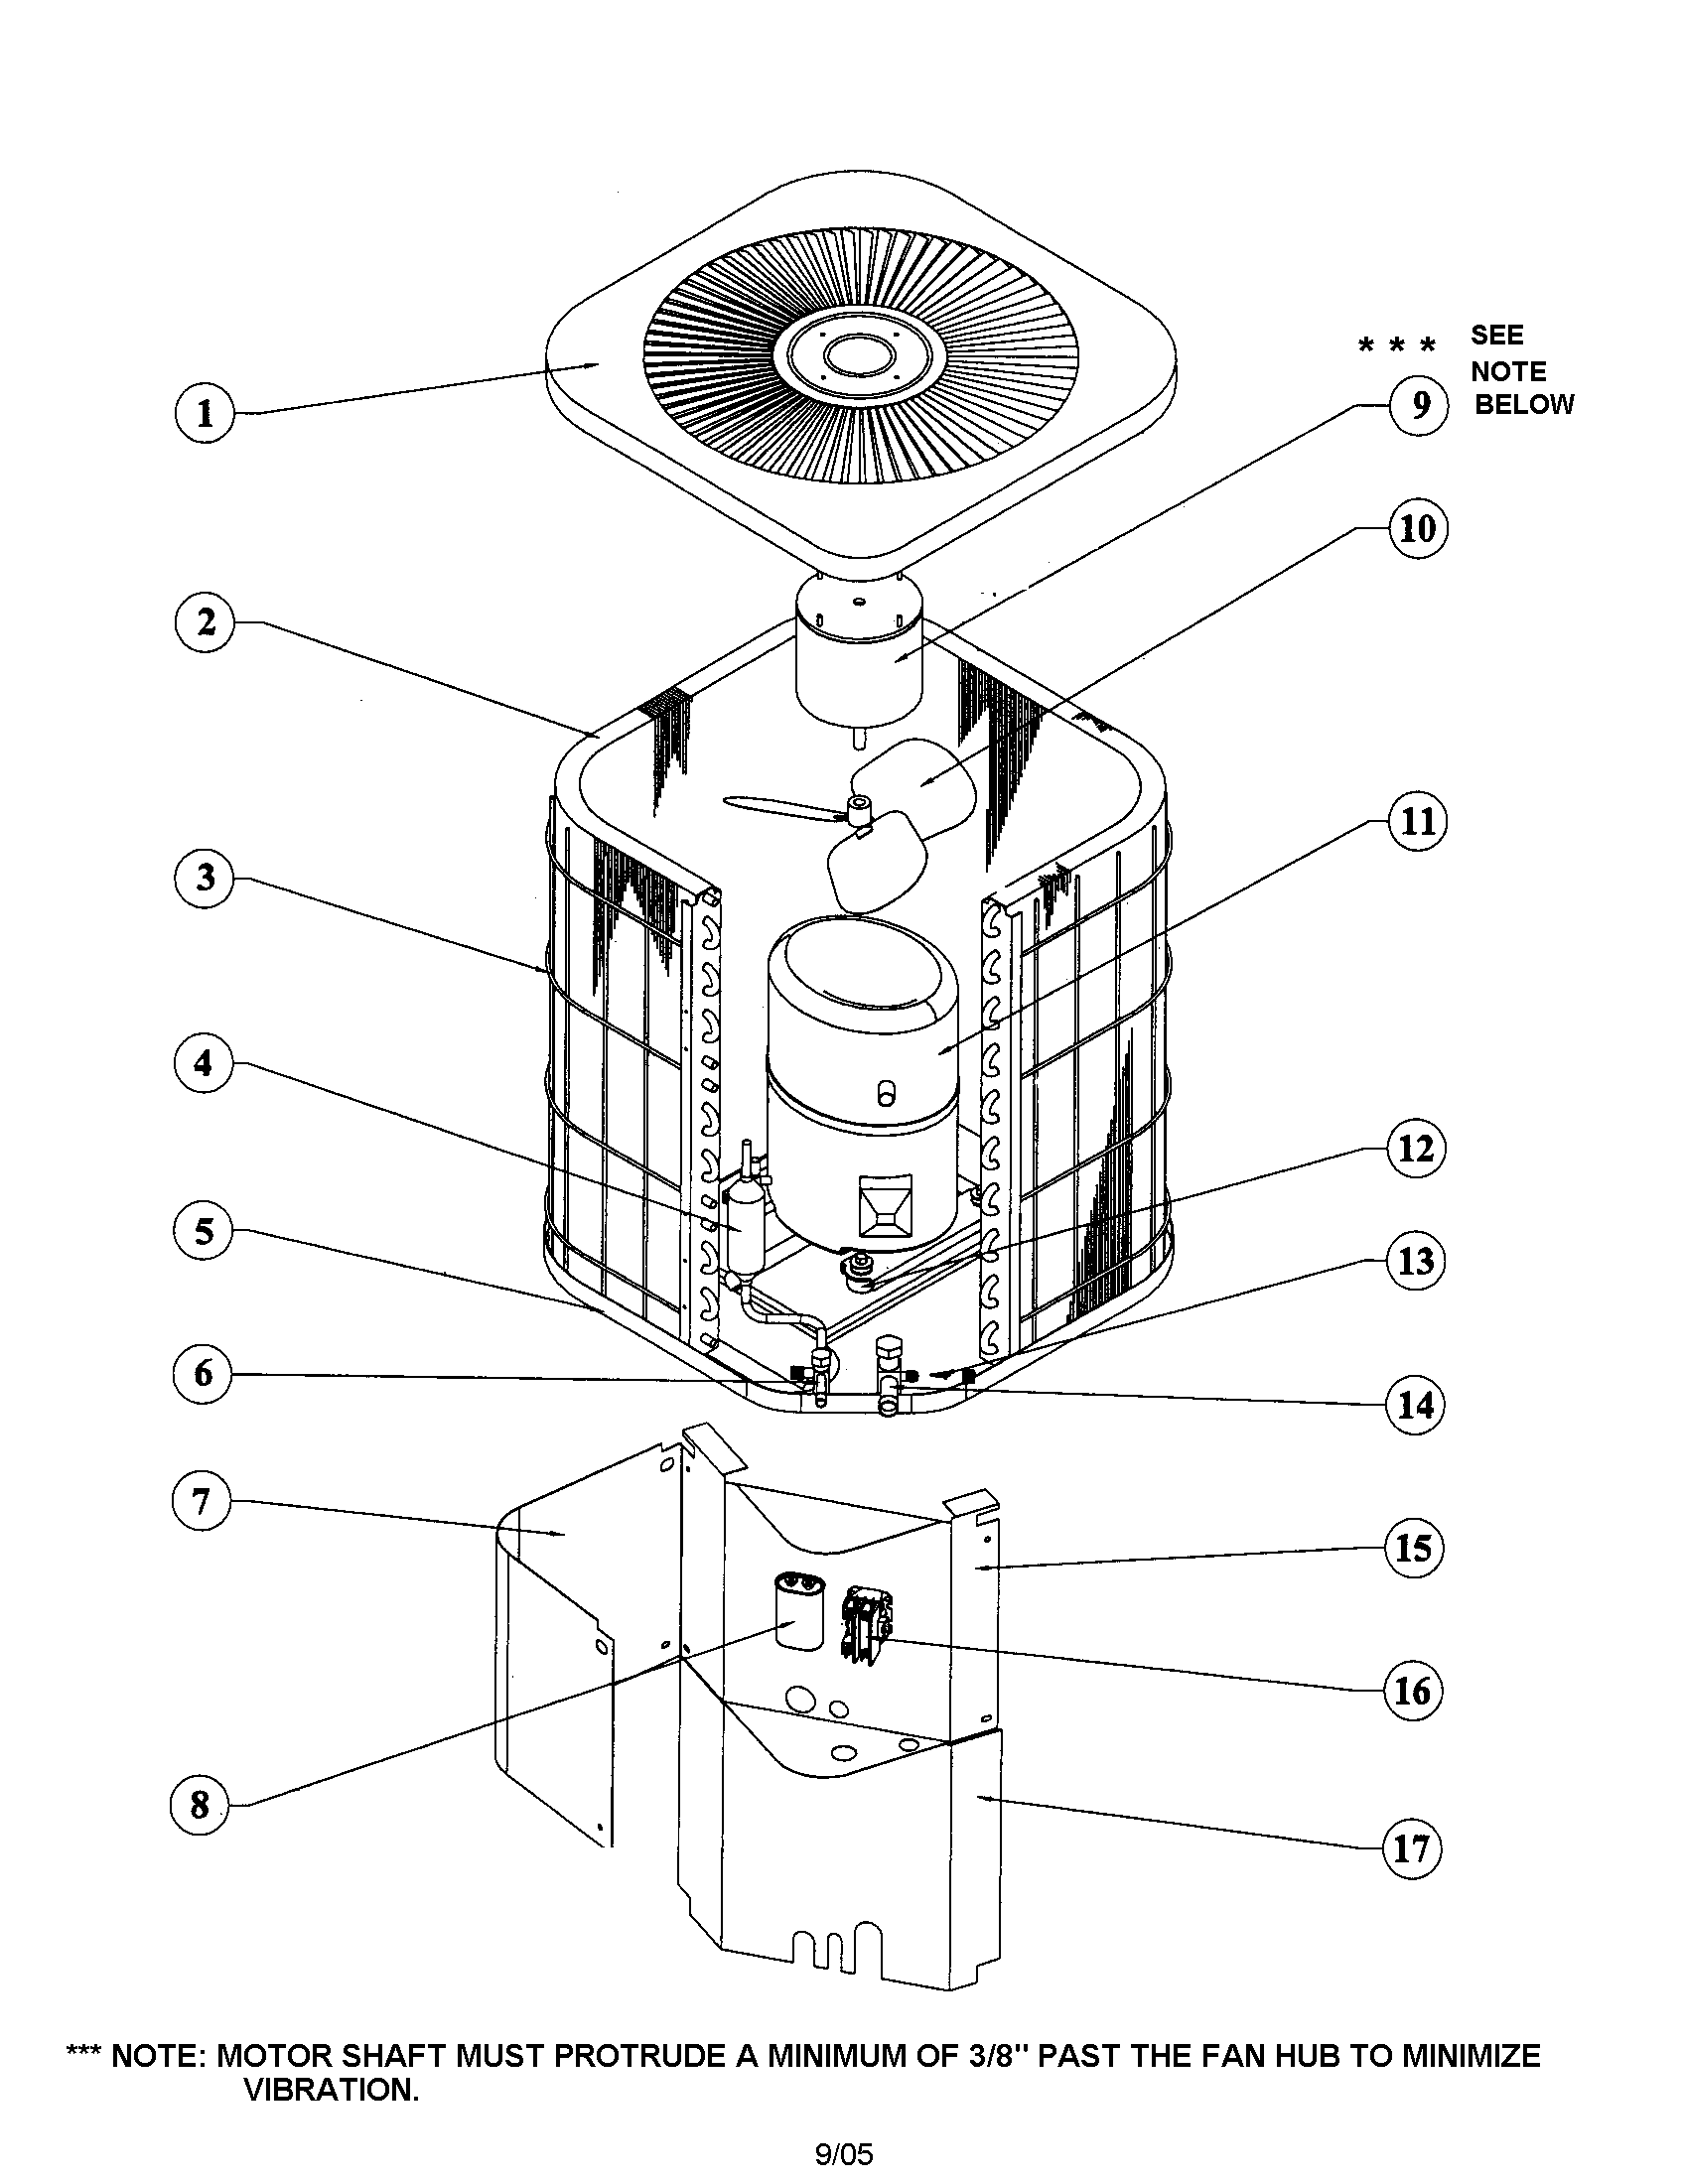 Goodman Hkr-10 Wiring Diagram from i0.wp.com